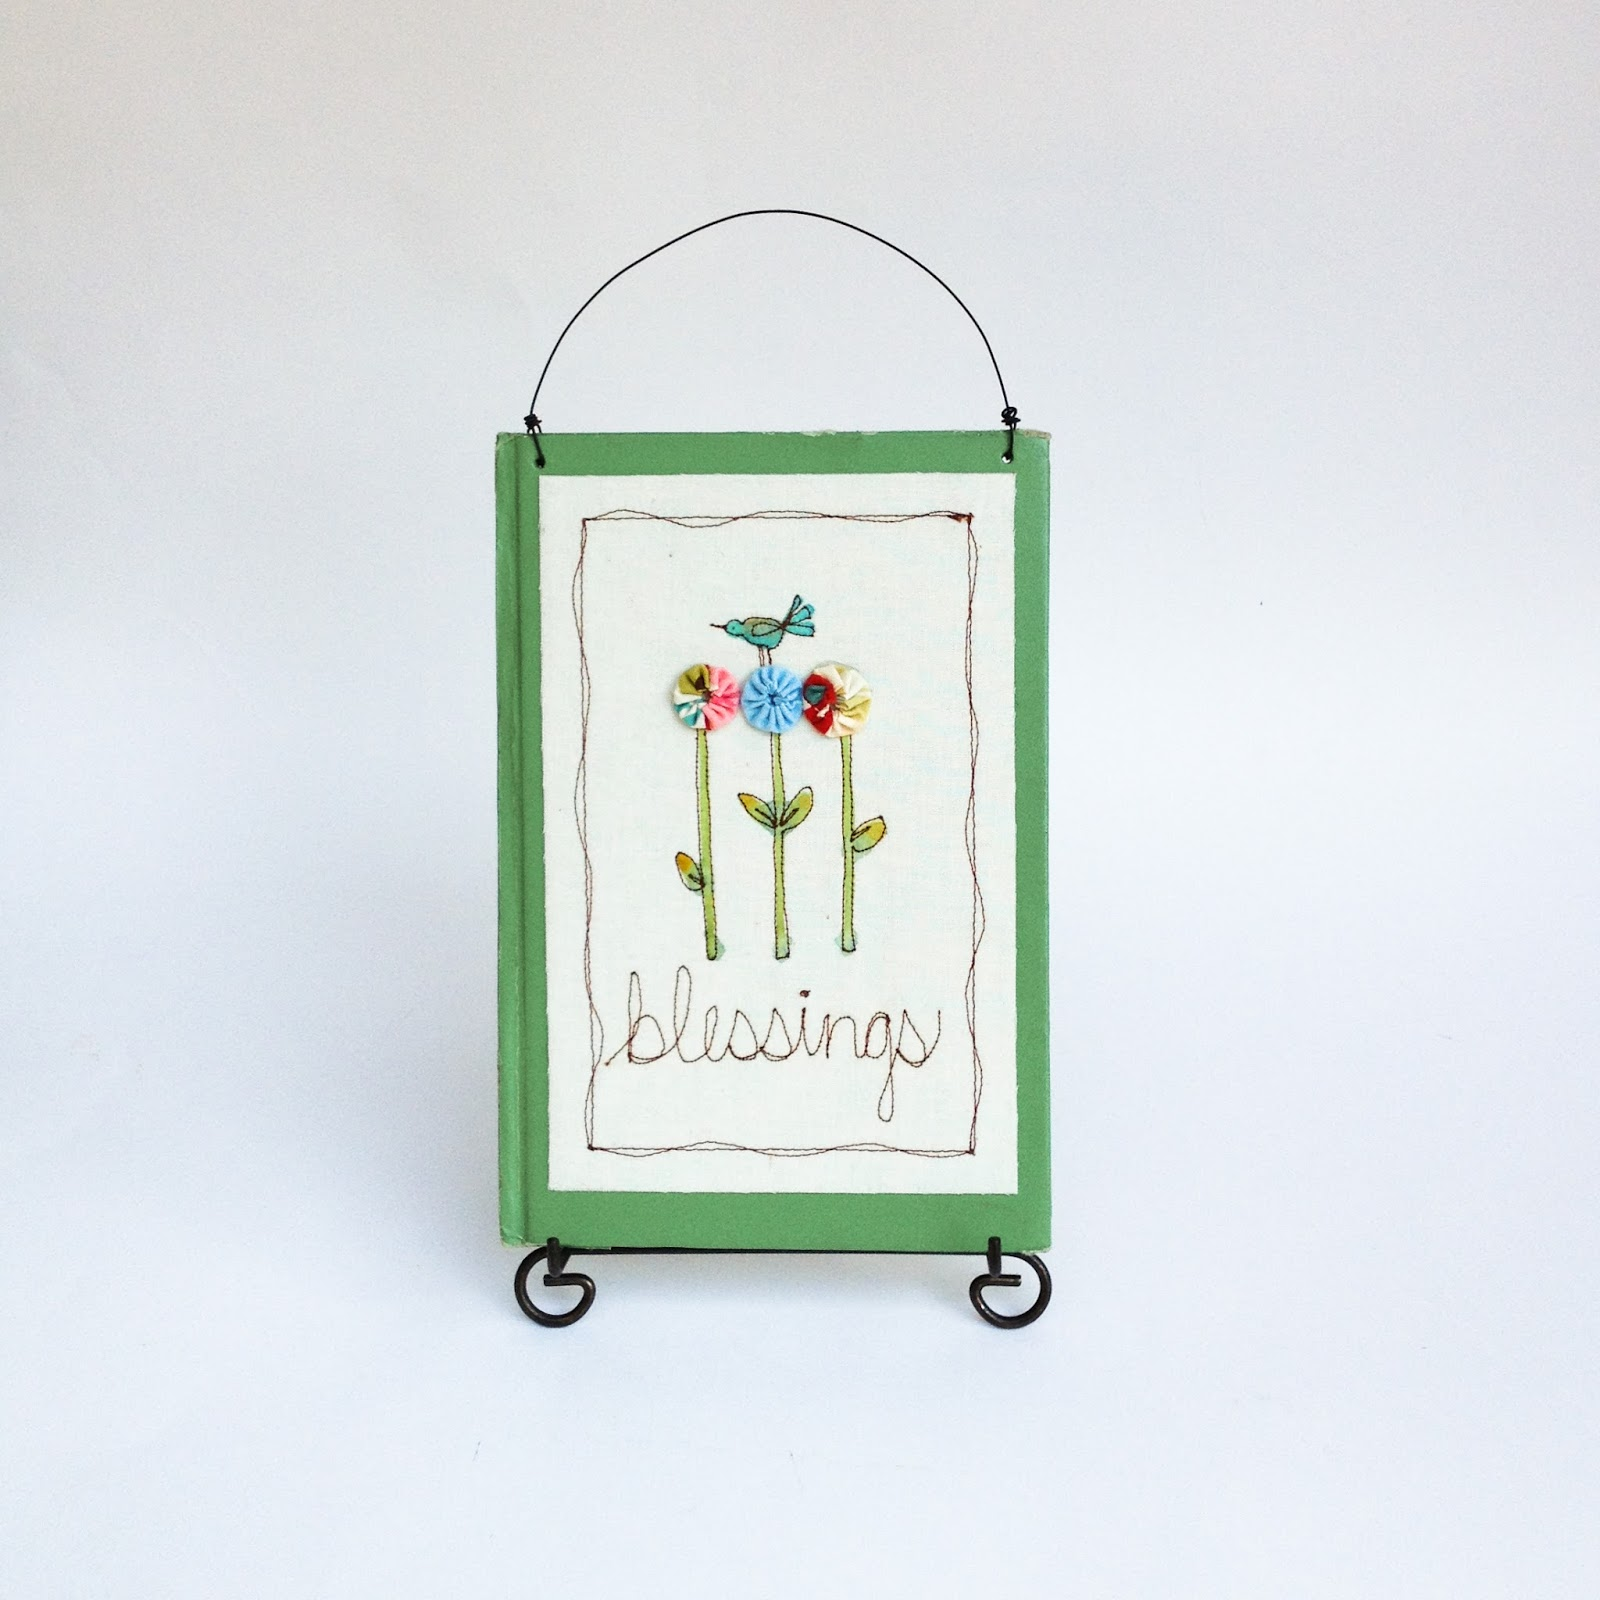 https://www.etsy.com/listing/168194038/green-word-sign-blessings-home-decor?ref=shop_home_active